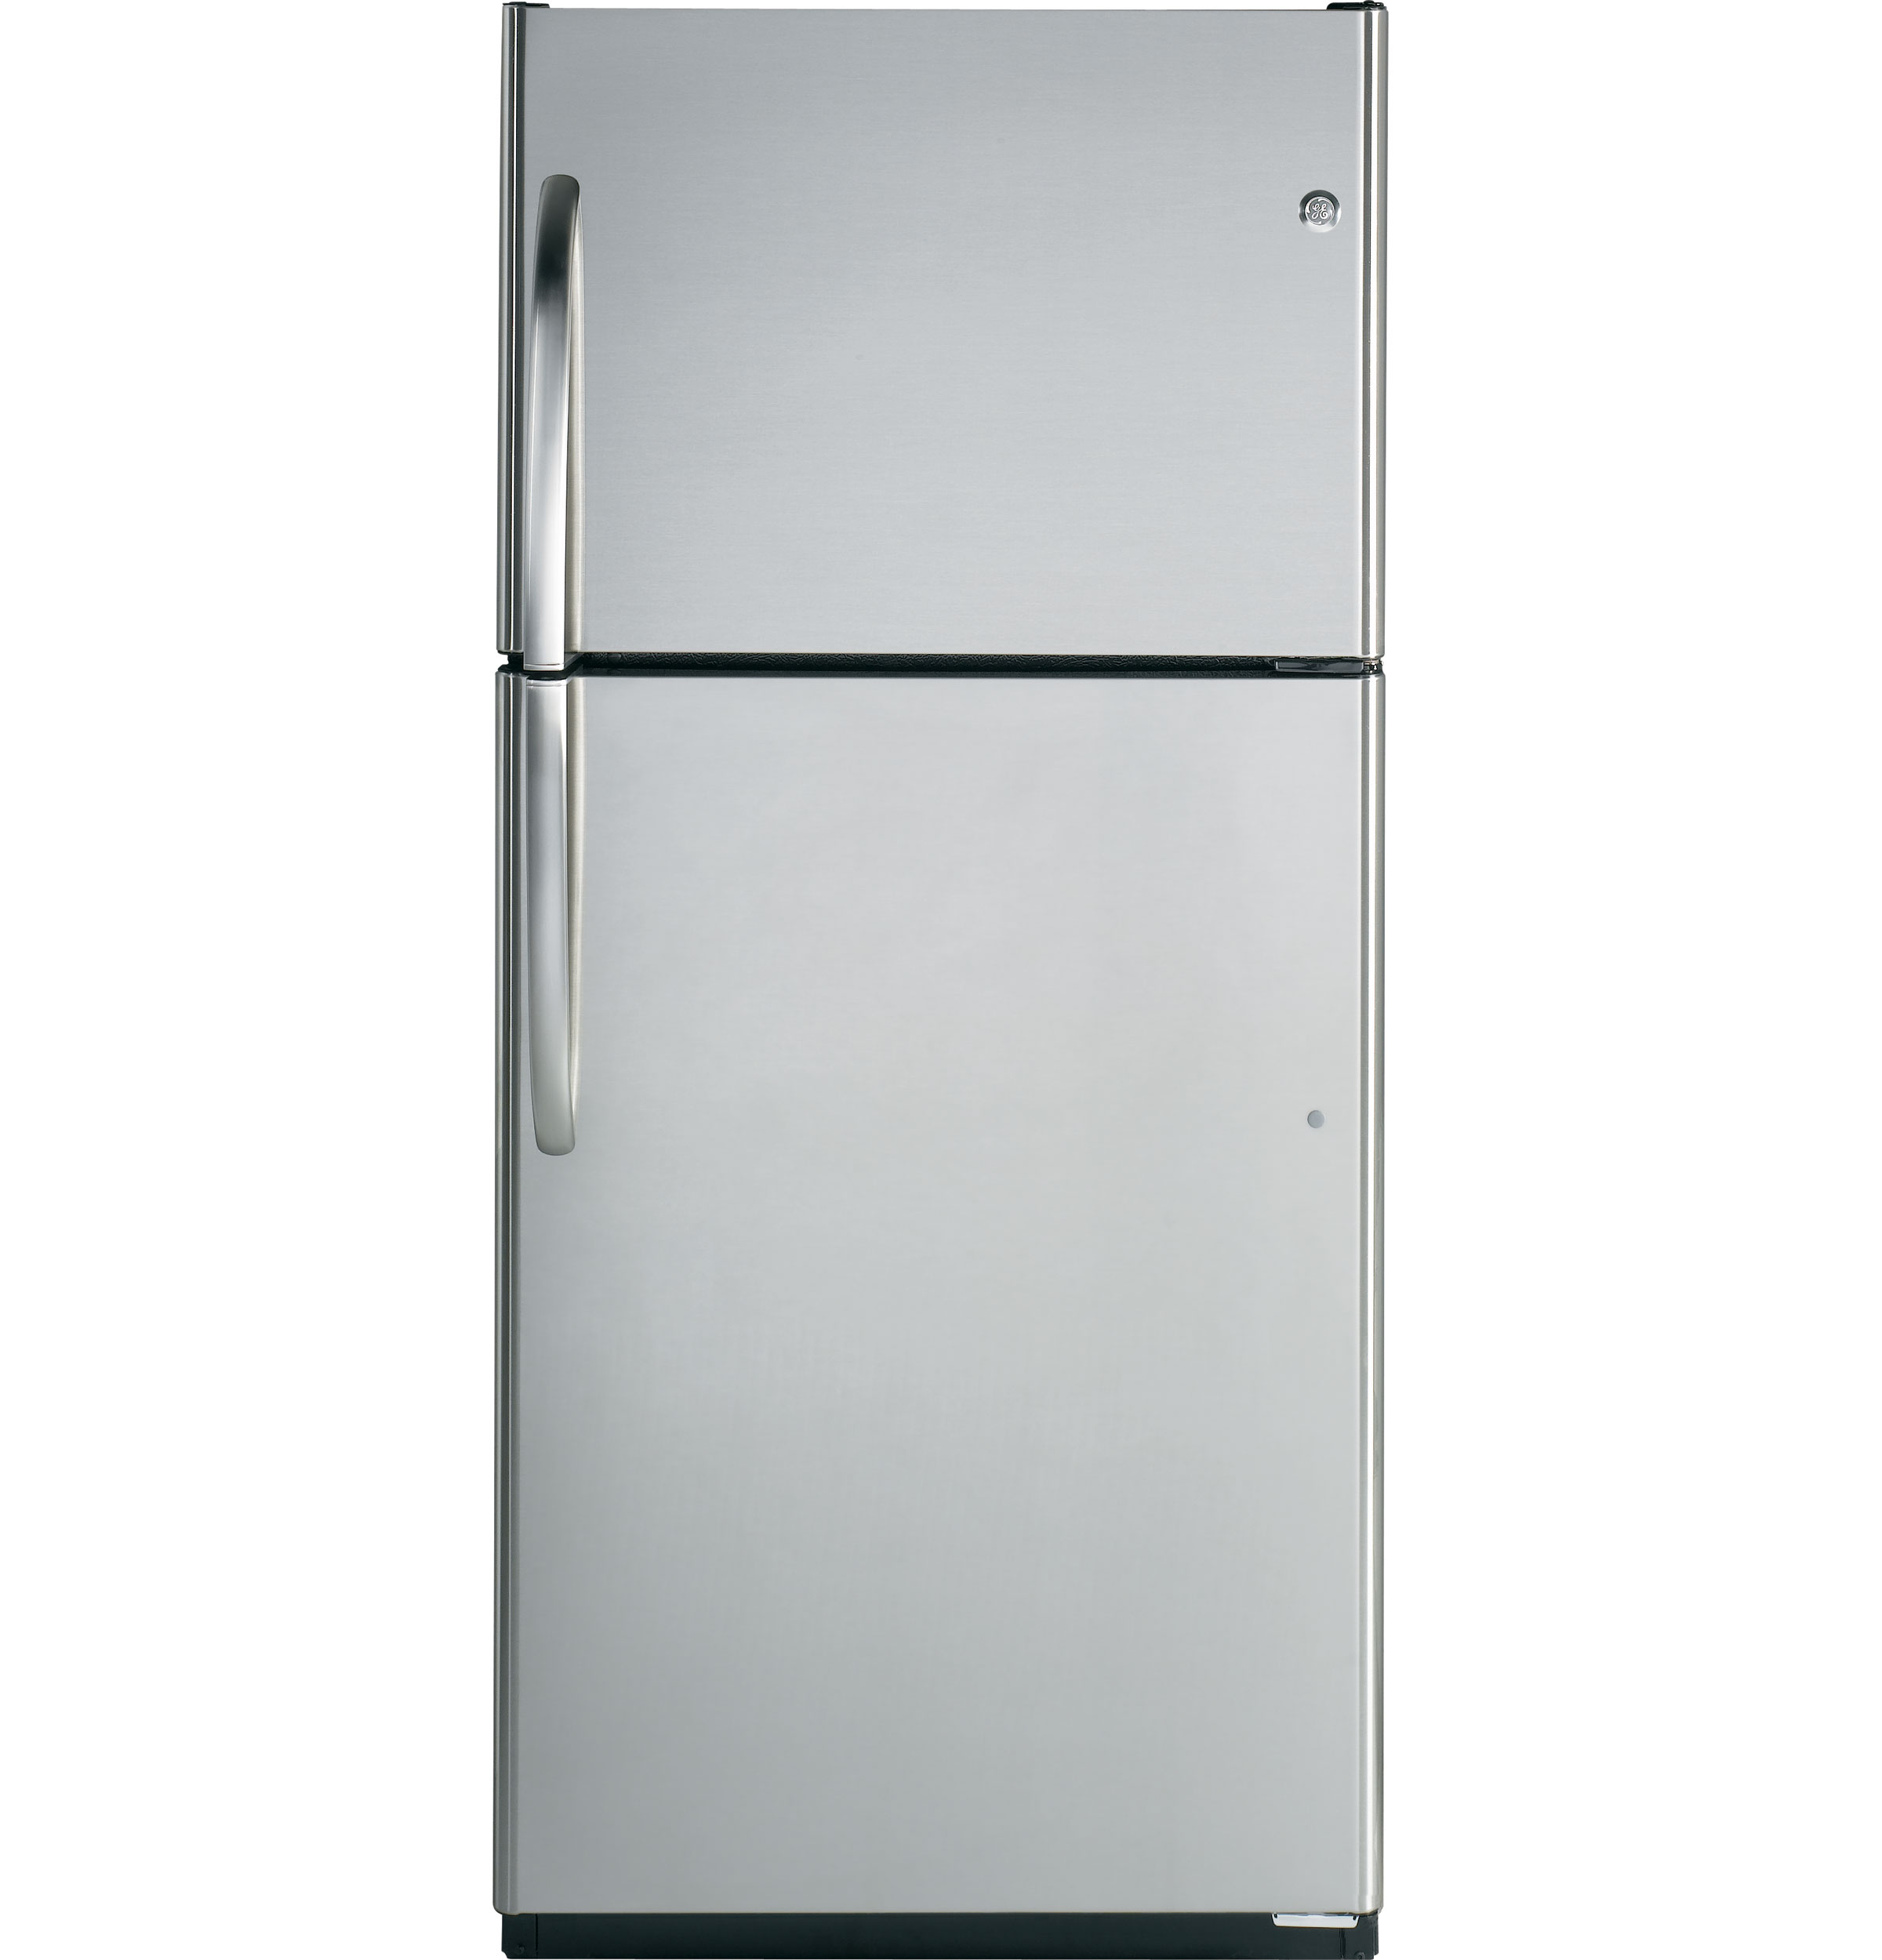 Ge 180 cu ft top freezer refrigerator gts18isxss ge appliances product image product image publicscrutiny Choice Image